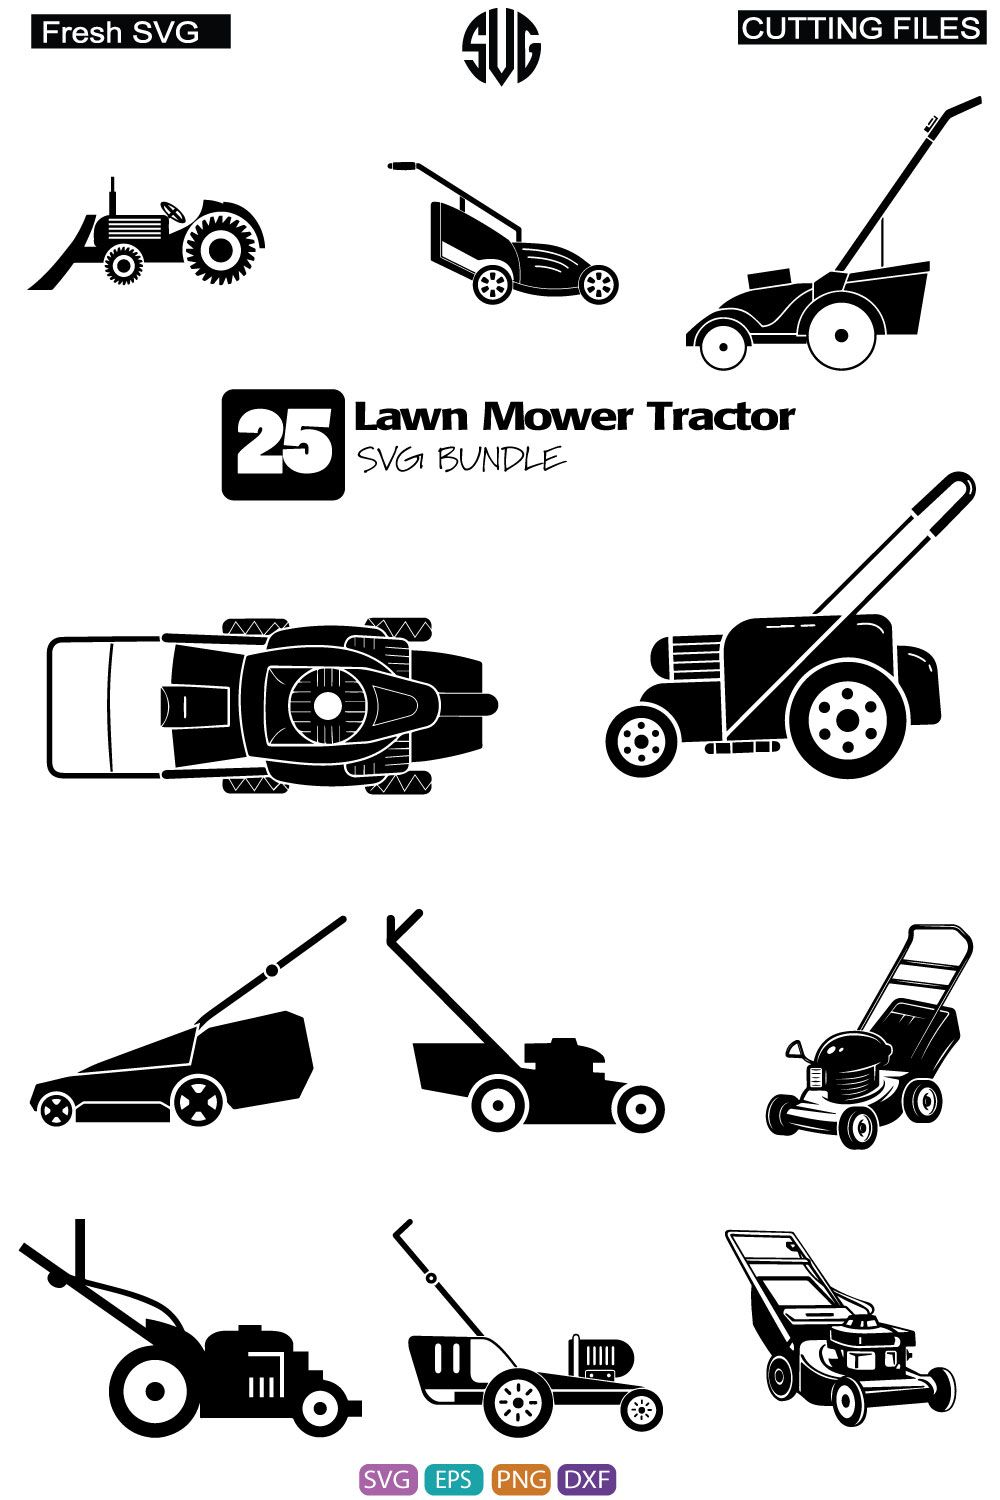 Lawn Mower Tractor Svg Lawn Mower Tractor Bundle Svg Lawn Mower Tractor Silhouette Mower Tractor Clipart Digital File Cricut Svg File In 2021 Lawn Mower Tractor Stencils For Wood Signs Tractor Silhouette